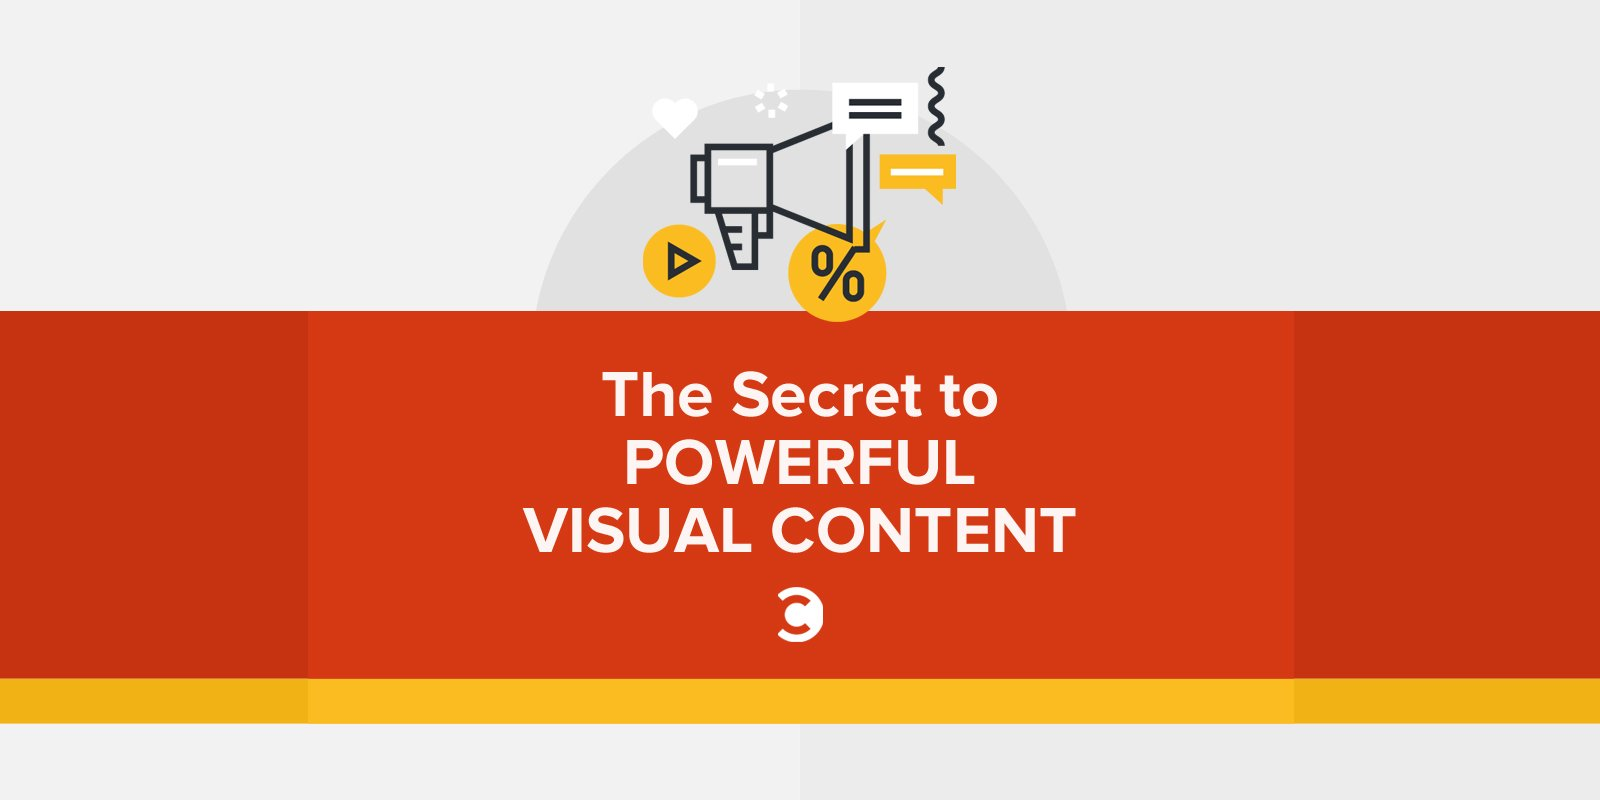 The Secret to Powerful Visual Content